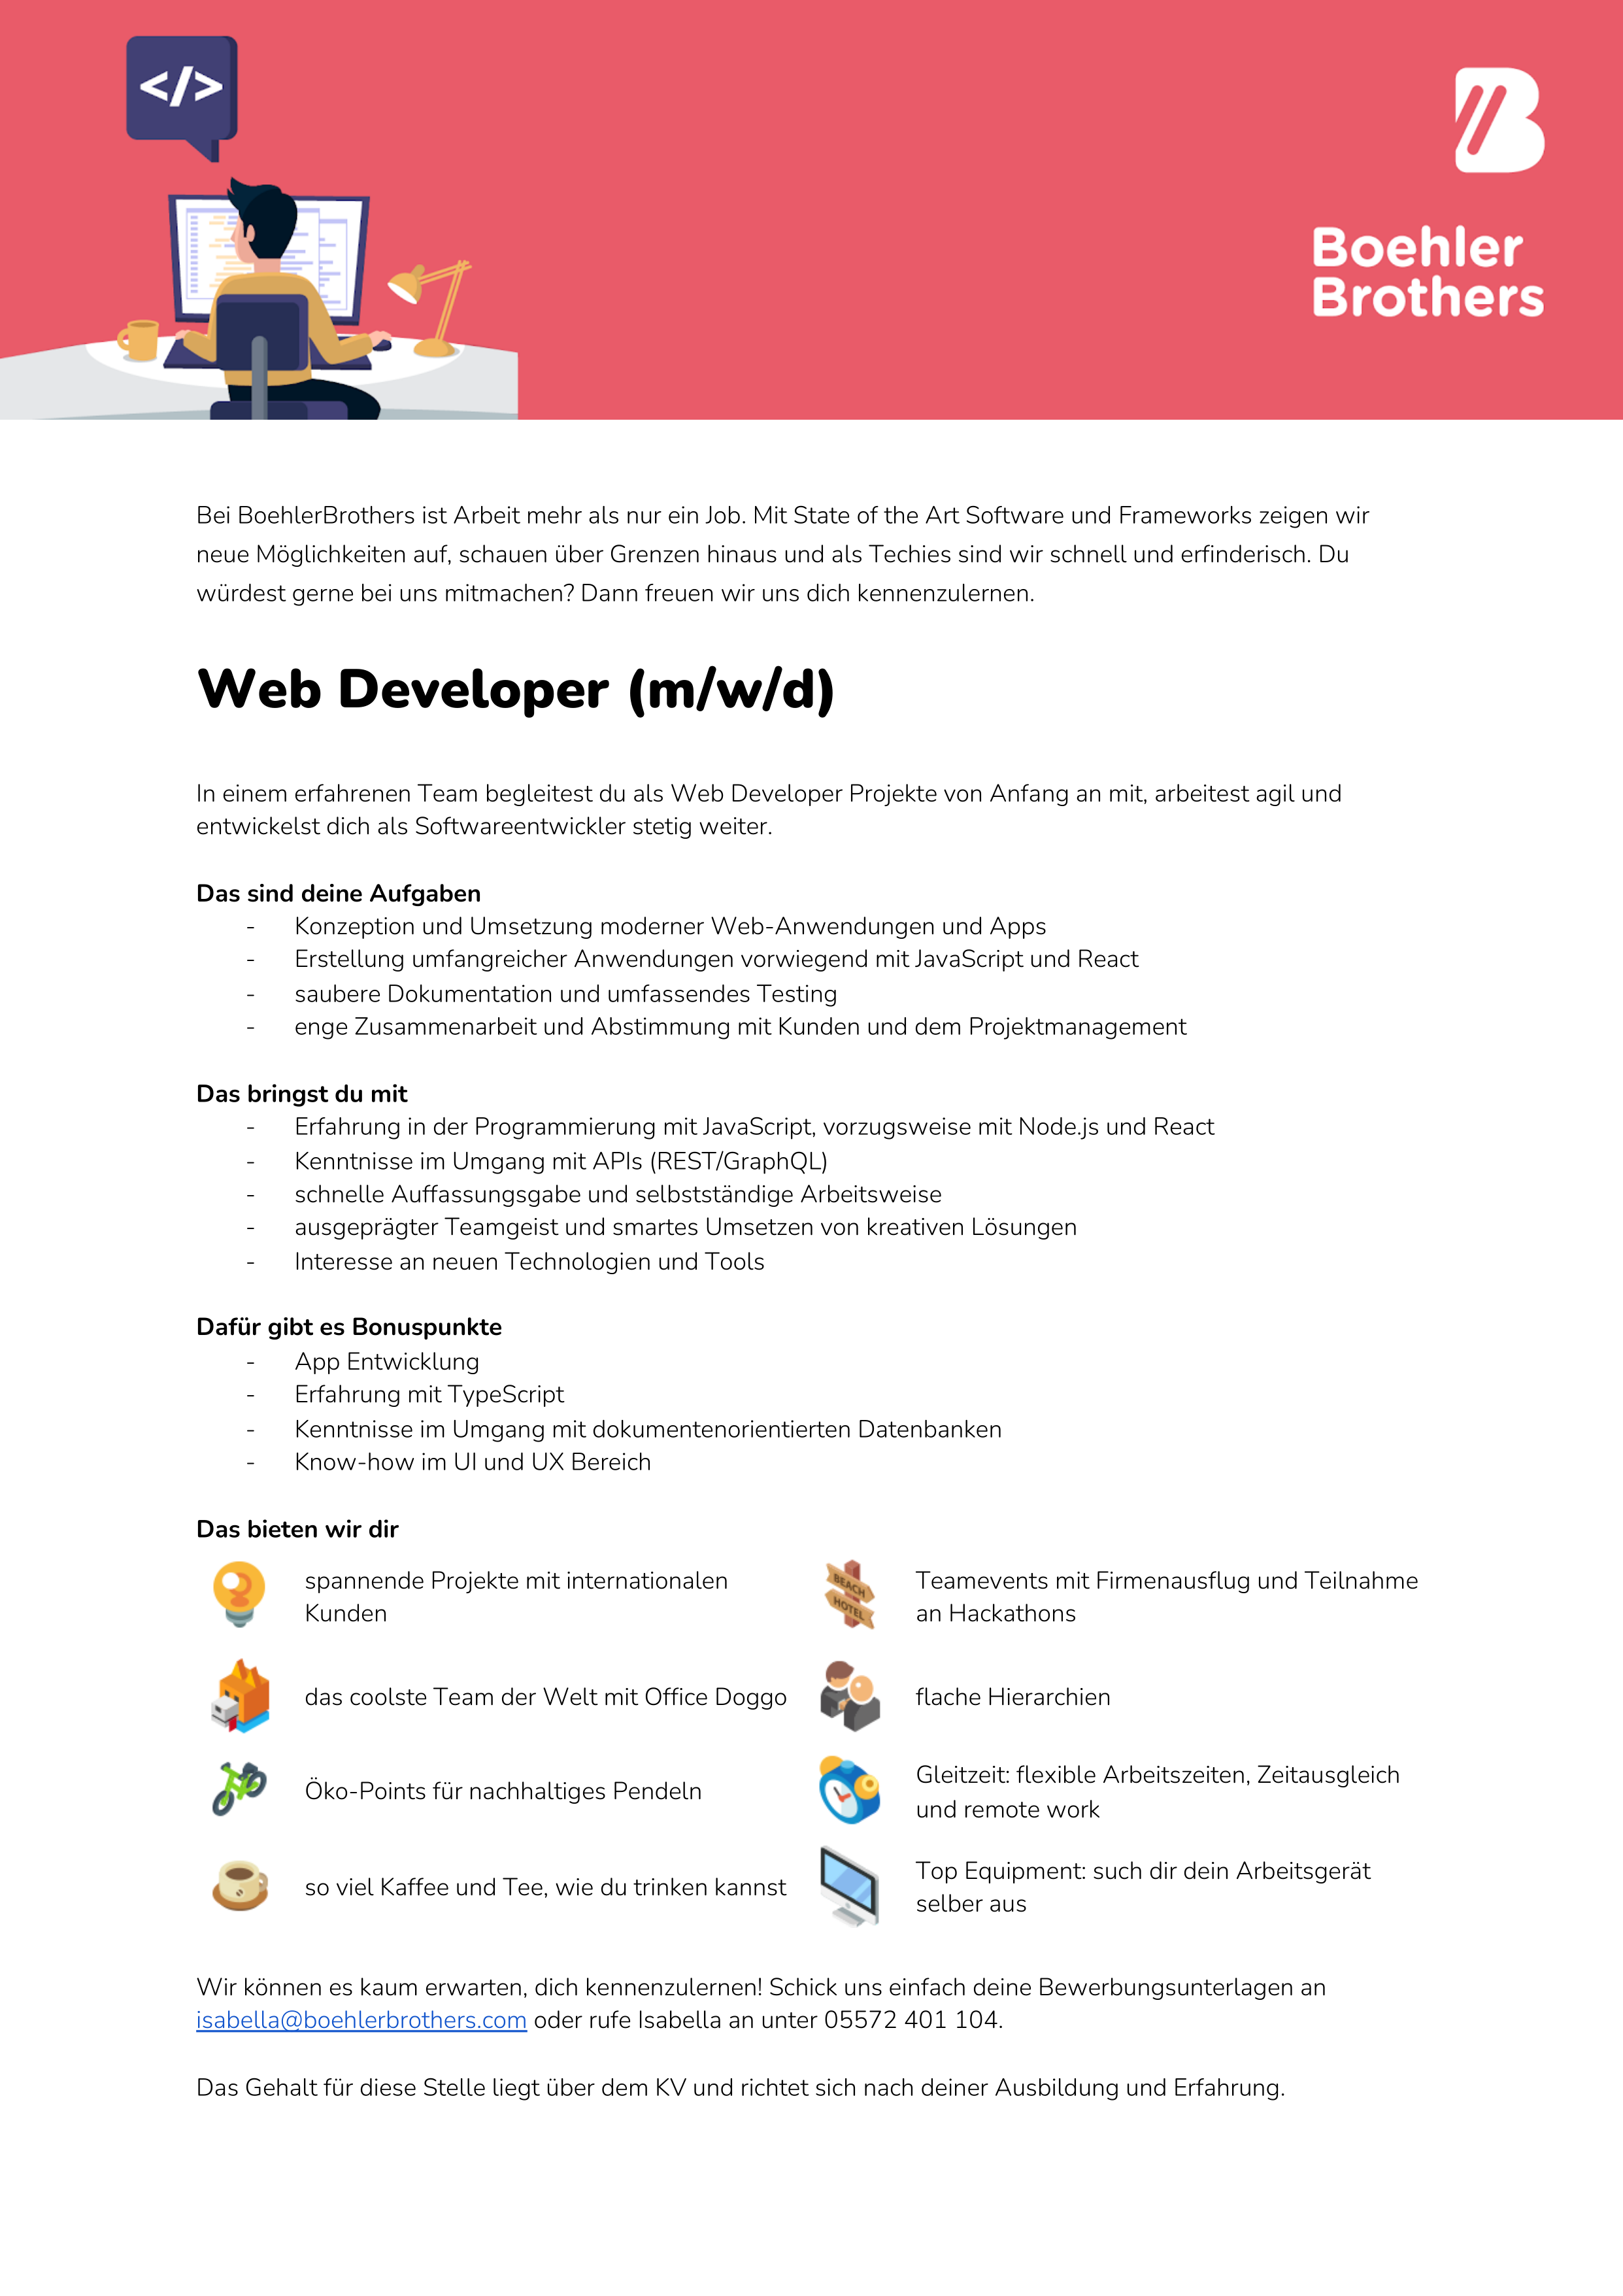 Web Developer (m/w/d)